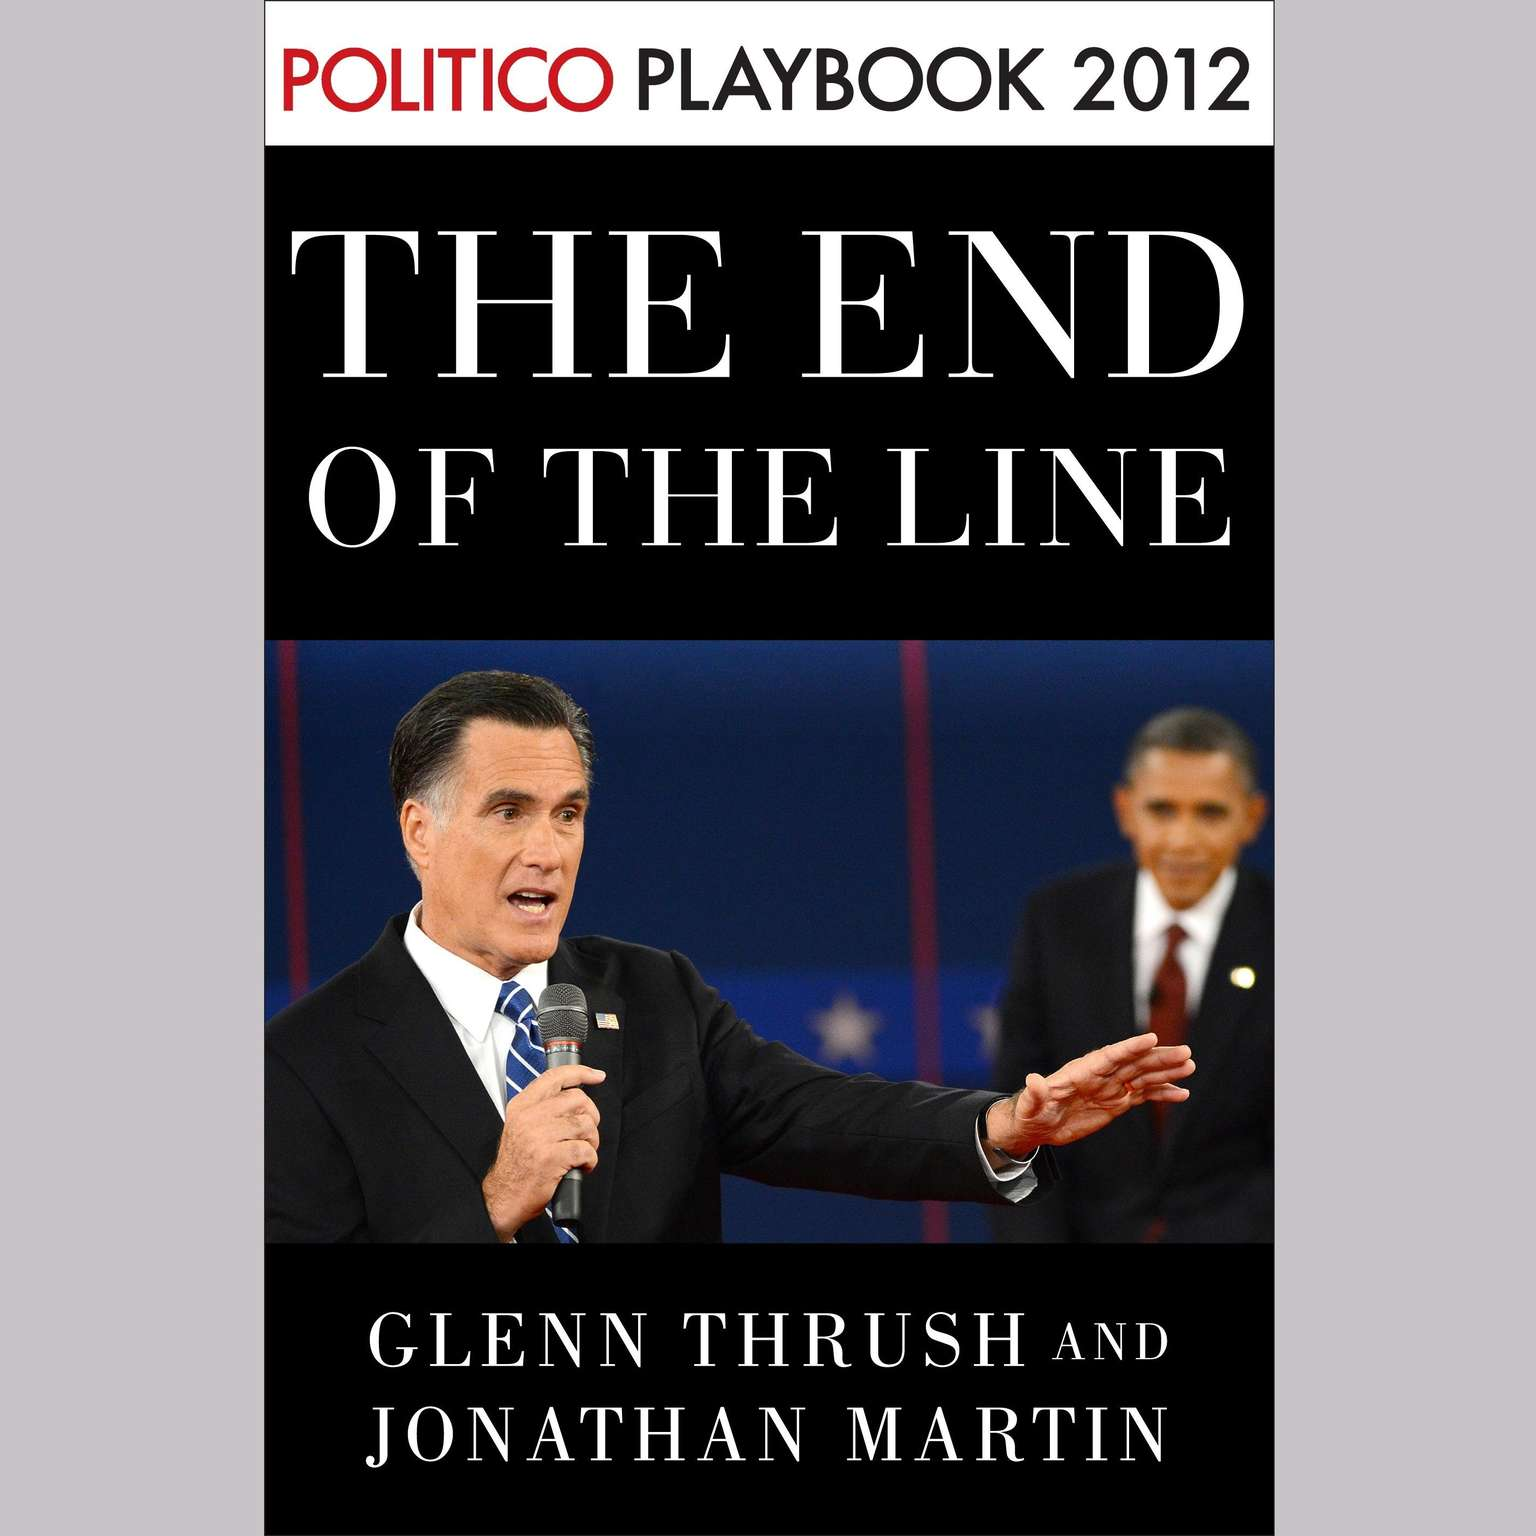 Printable The End of the Line: Romney vs. Obama: the 34 days that decided the election: Playbook 2012 (POLITICO Inside Election 2012): Romney vs. Obama: The 34 days That Decided the Election Audiobook Cover Art